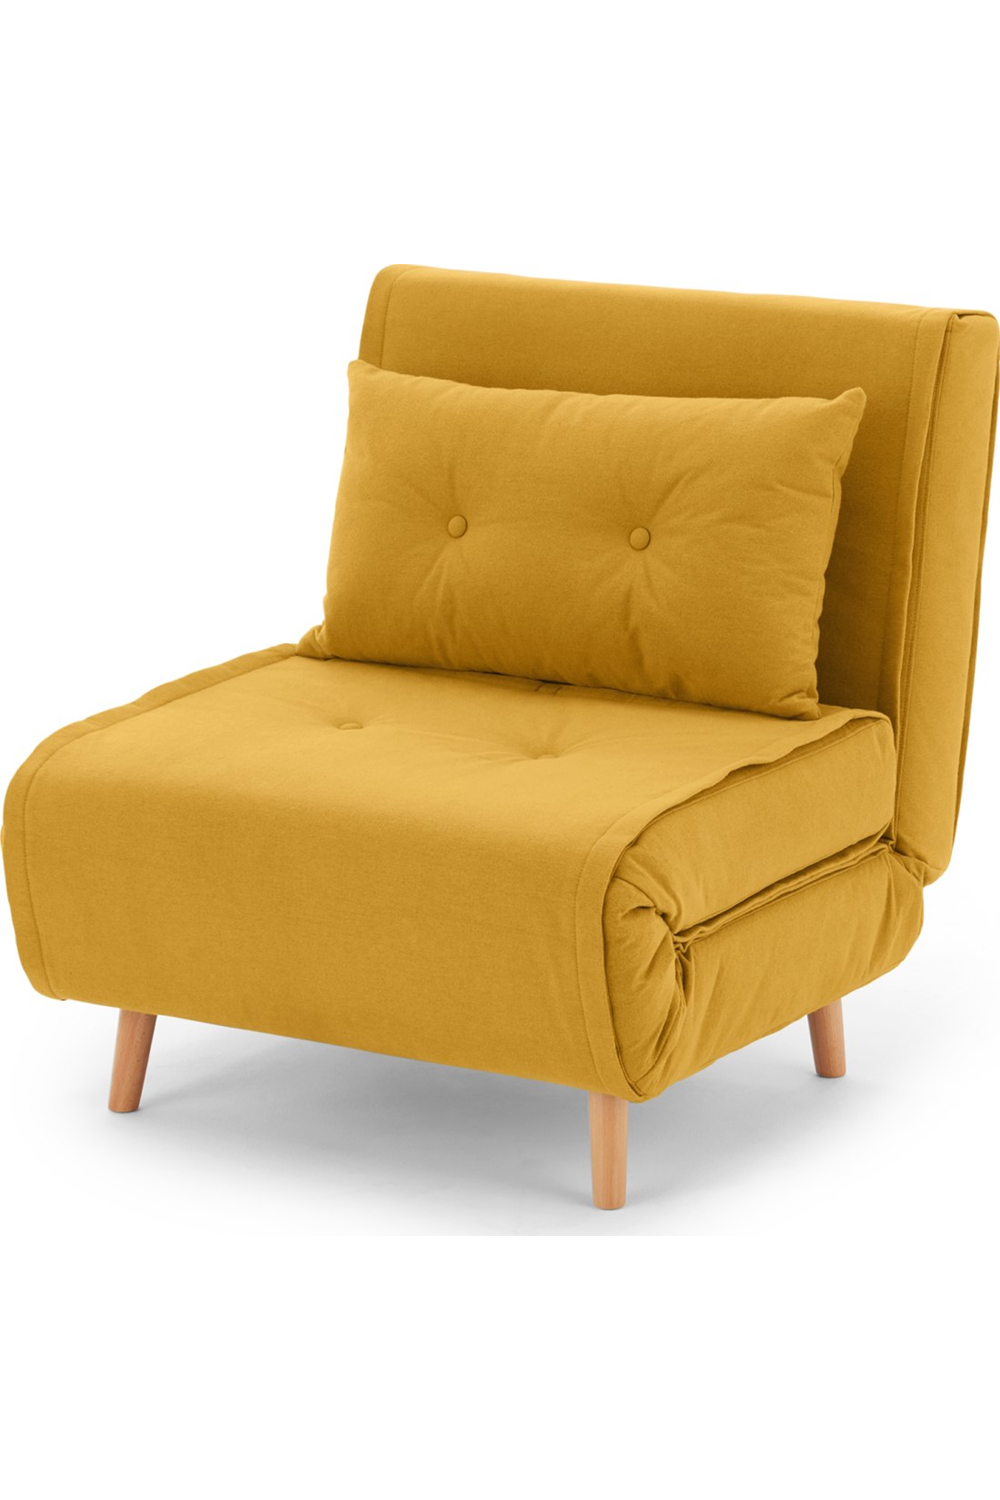 Made Schlafsofa Gelb Couch Chair Furniture